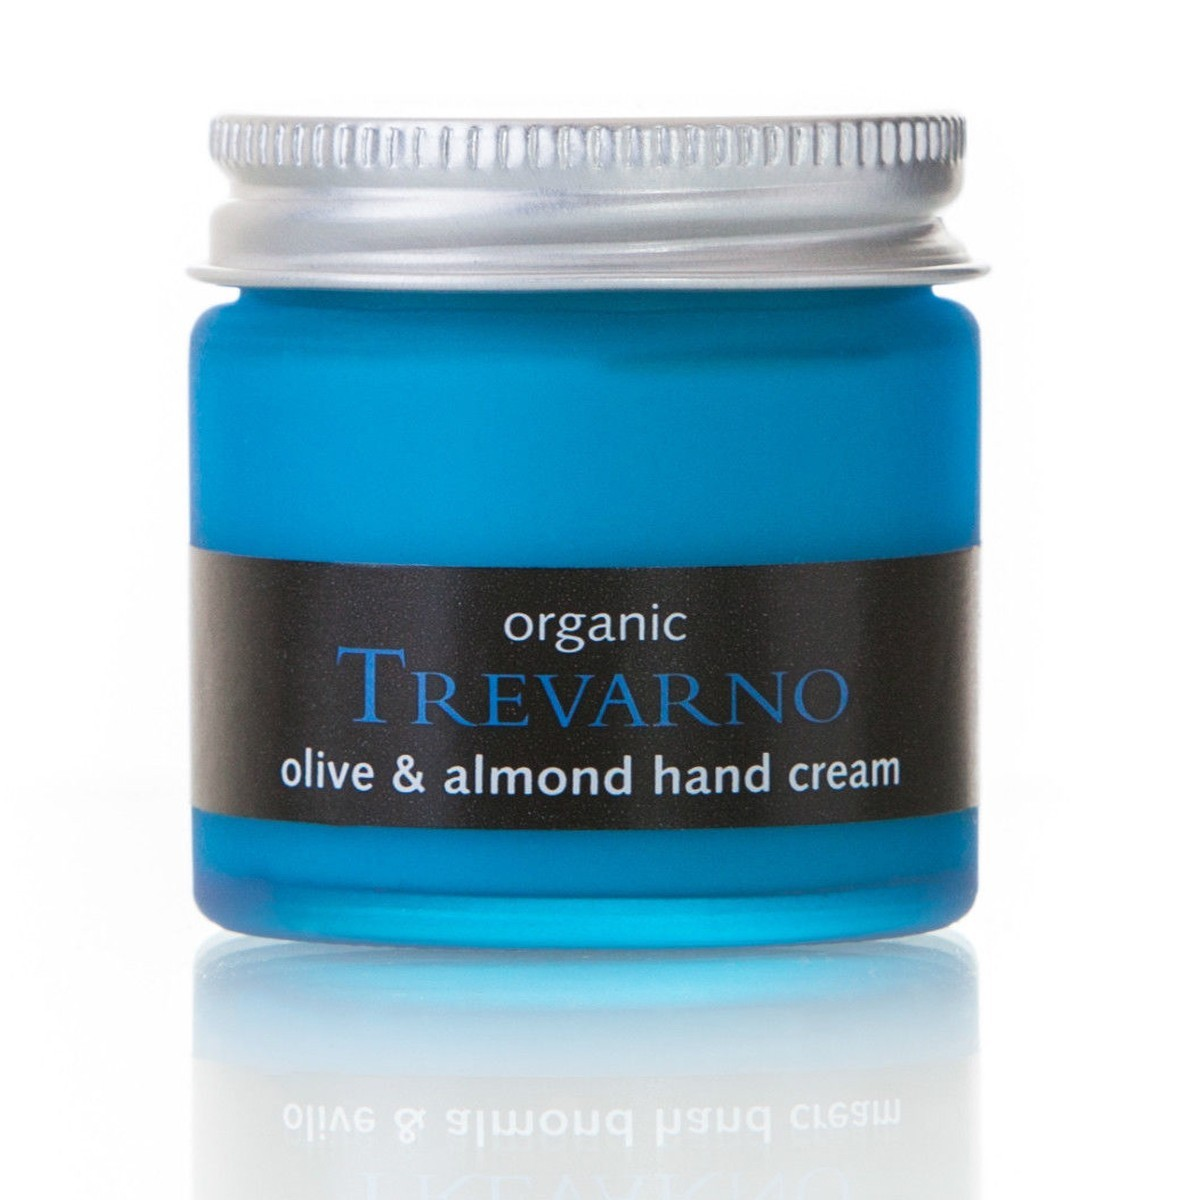 Organic Trevarno Olive & Almond Hand Cream 60ml